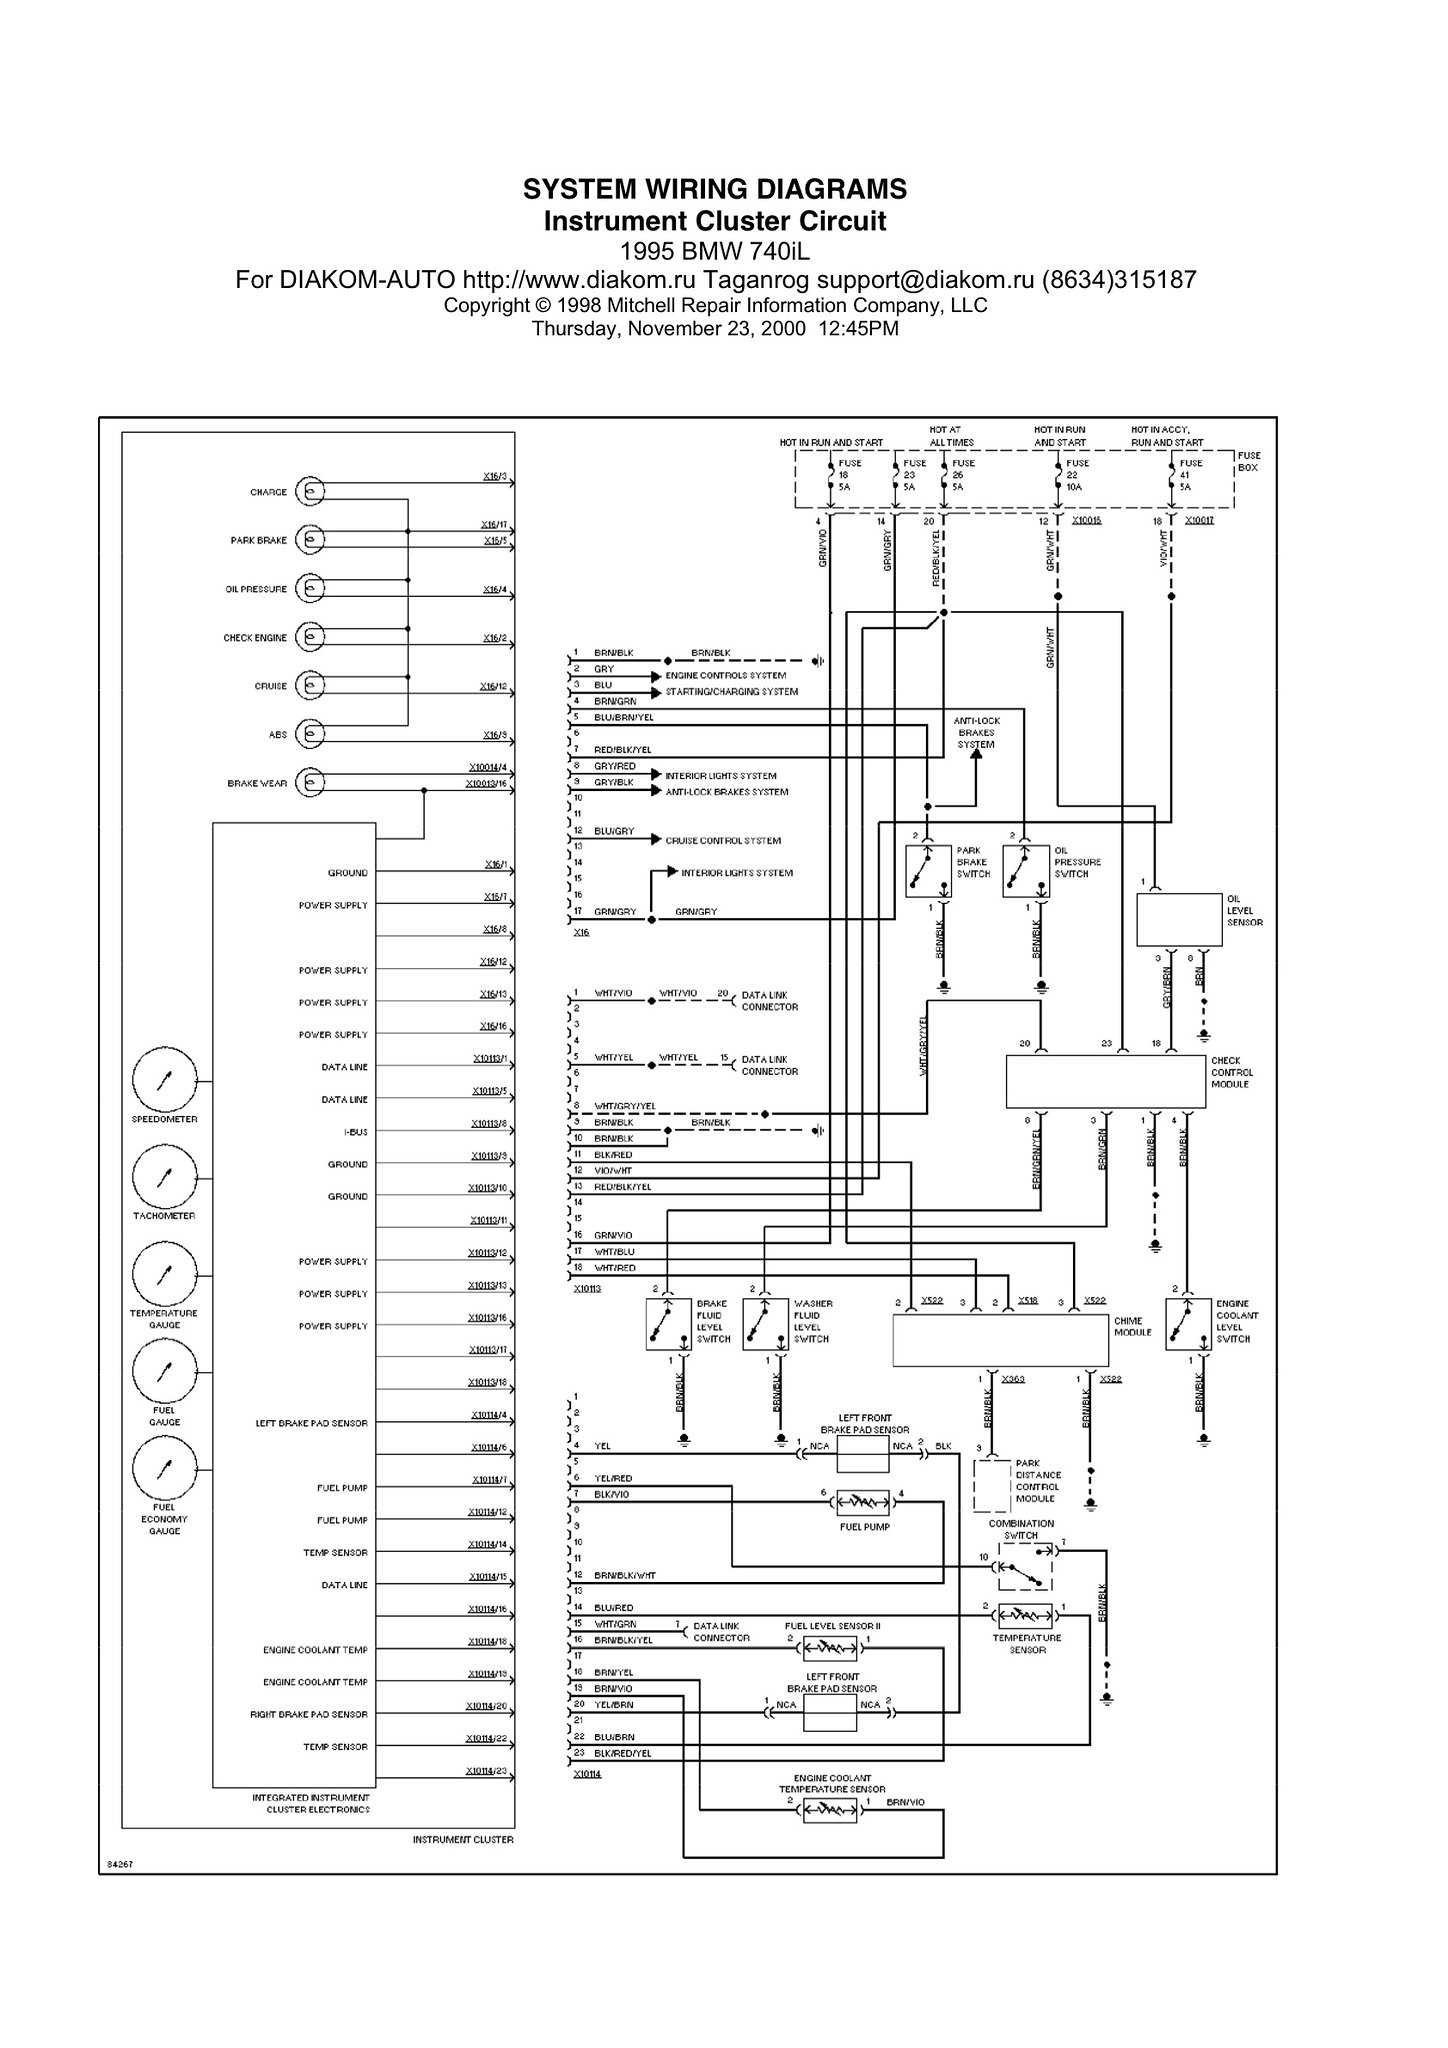 How to power on e39 cluster out of car? Bmw Engine Wiring Diagram on snap-on parts diagrams, 1998 bmw 528i parts diagrams, pinout diagrams, bmw stereo wiring harness, comet clutch diagrams, time warner cable connection diagrams, bmw e46 wiring harness, bmw 328i radiator diagram, bmw suspension diagrams, bmw wiring harness connectors male, bmw fuses, bmw planet diagrams, ford transmission diagrams, directv swim diagrams, golf cart diagrams, ford fuel system diagrams, ford 5.4 vacuum line diagrams, bmw schematic diagram, bmw cooling system,